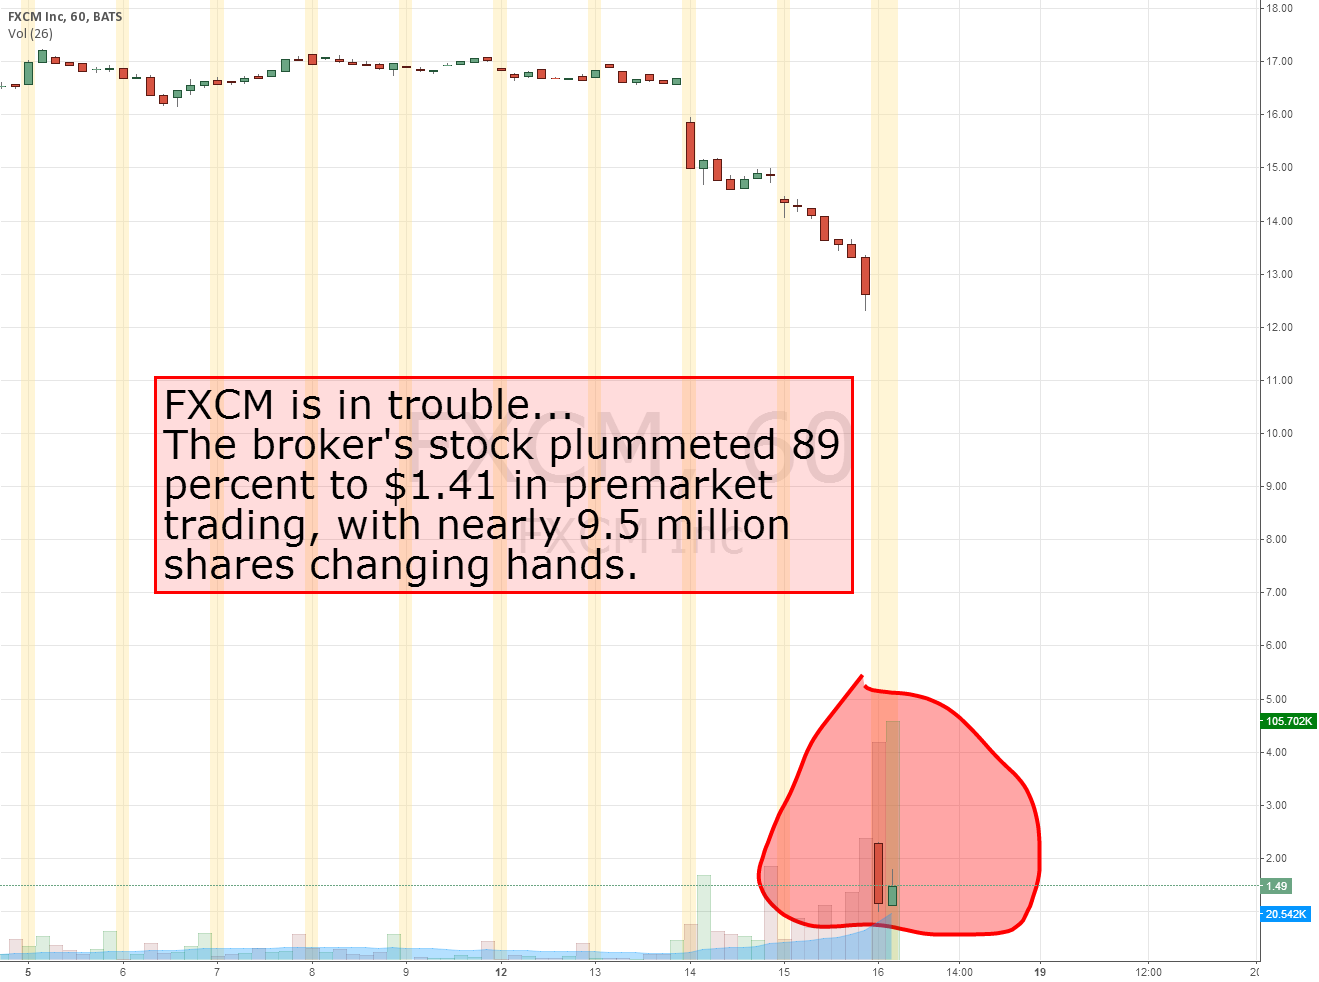 FXCM is in trouble...